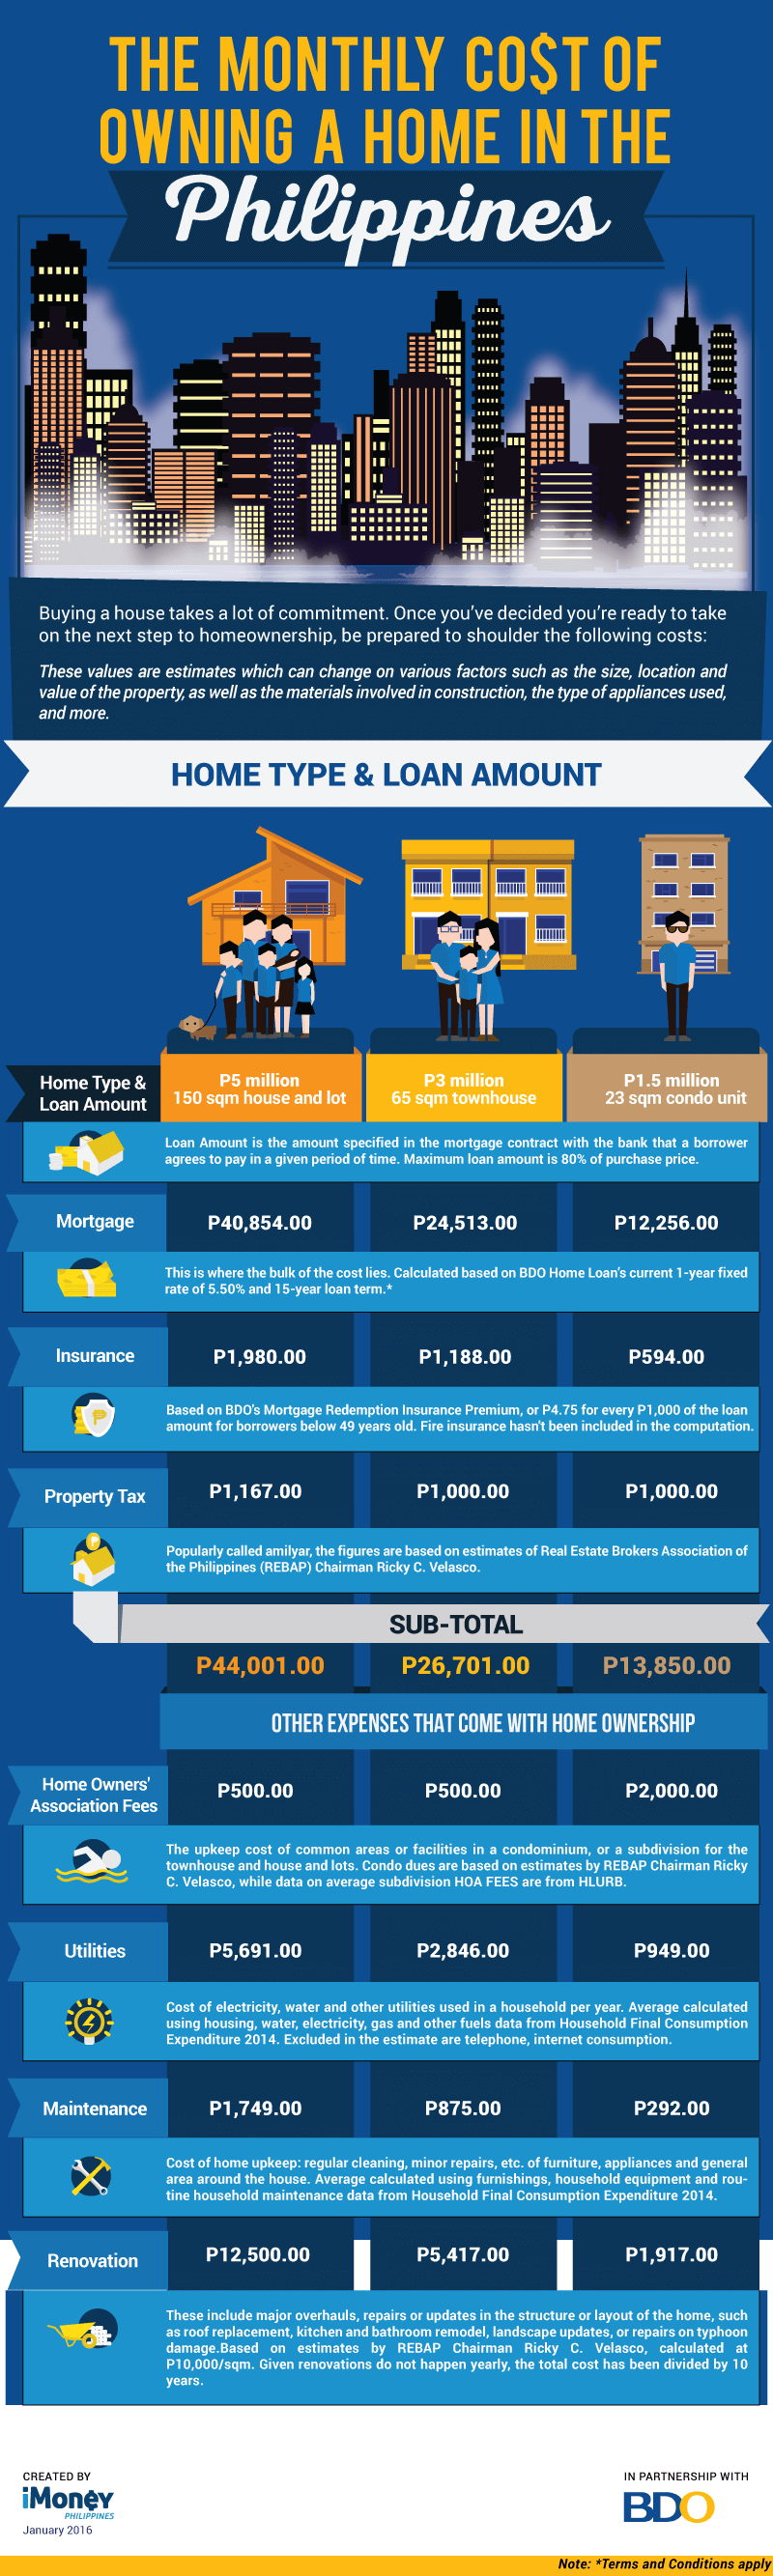 Infographic Image of The Monthly Cost of Owning a House In The Philippines